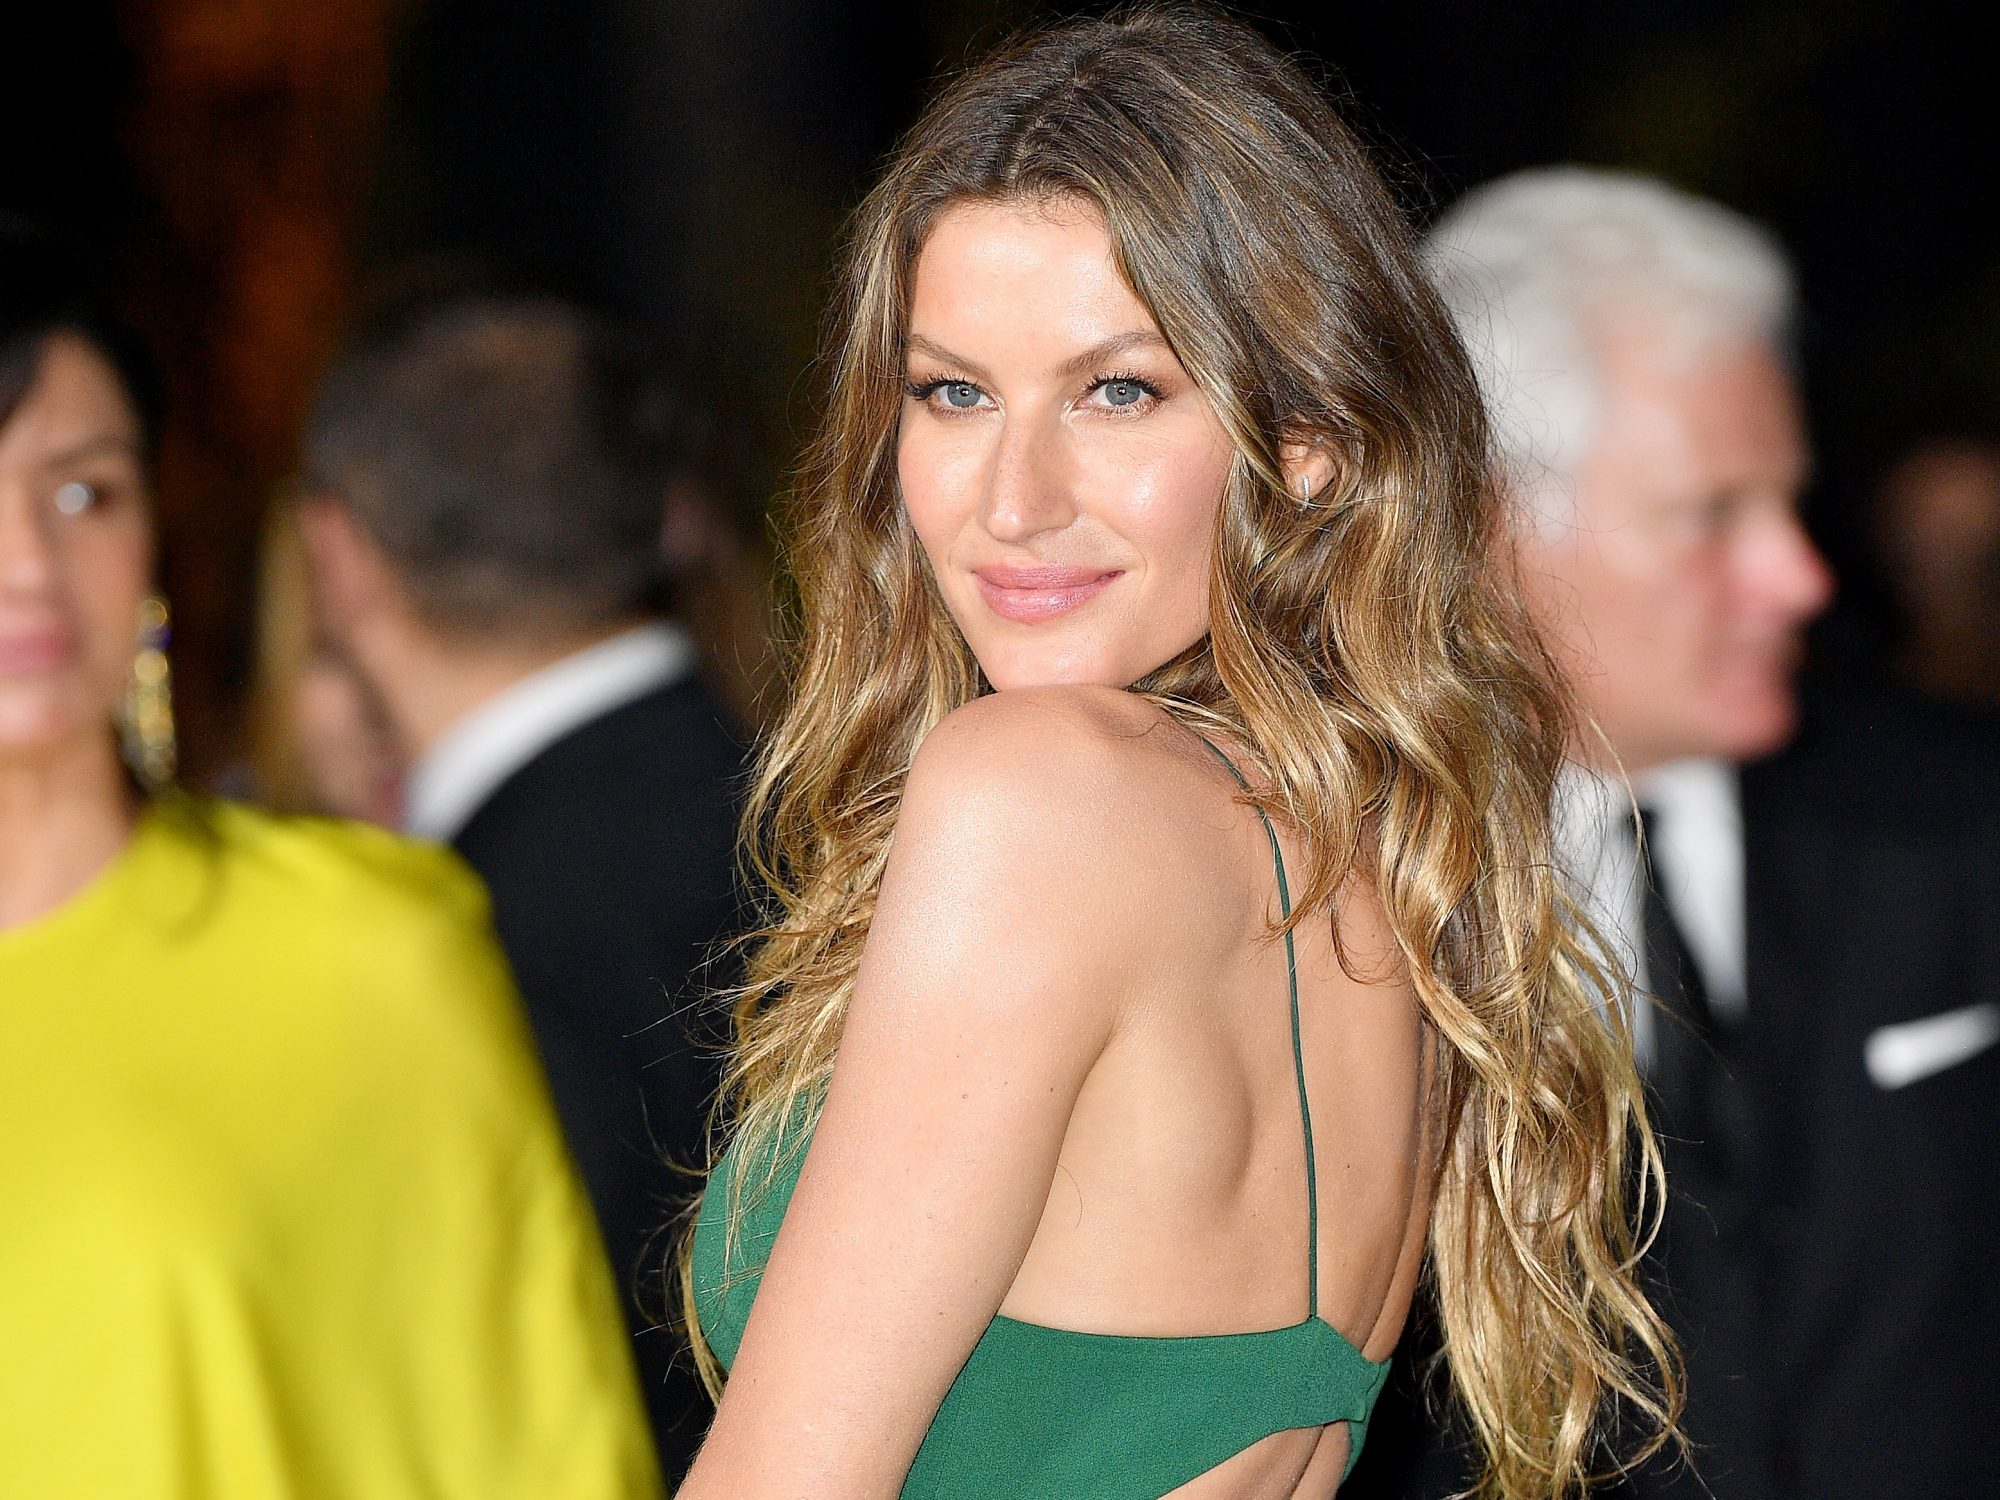 Gisele Bundchen Changing Looks - Lead